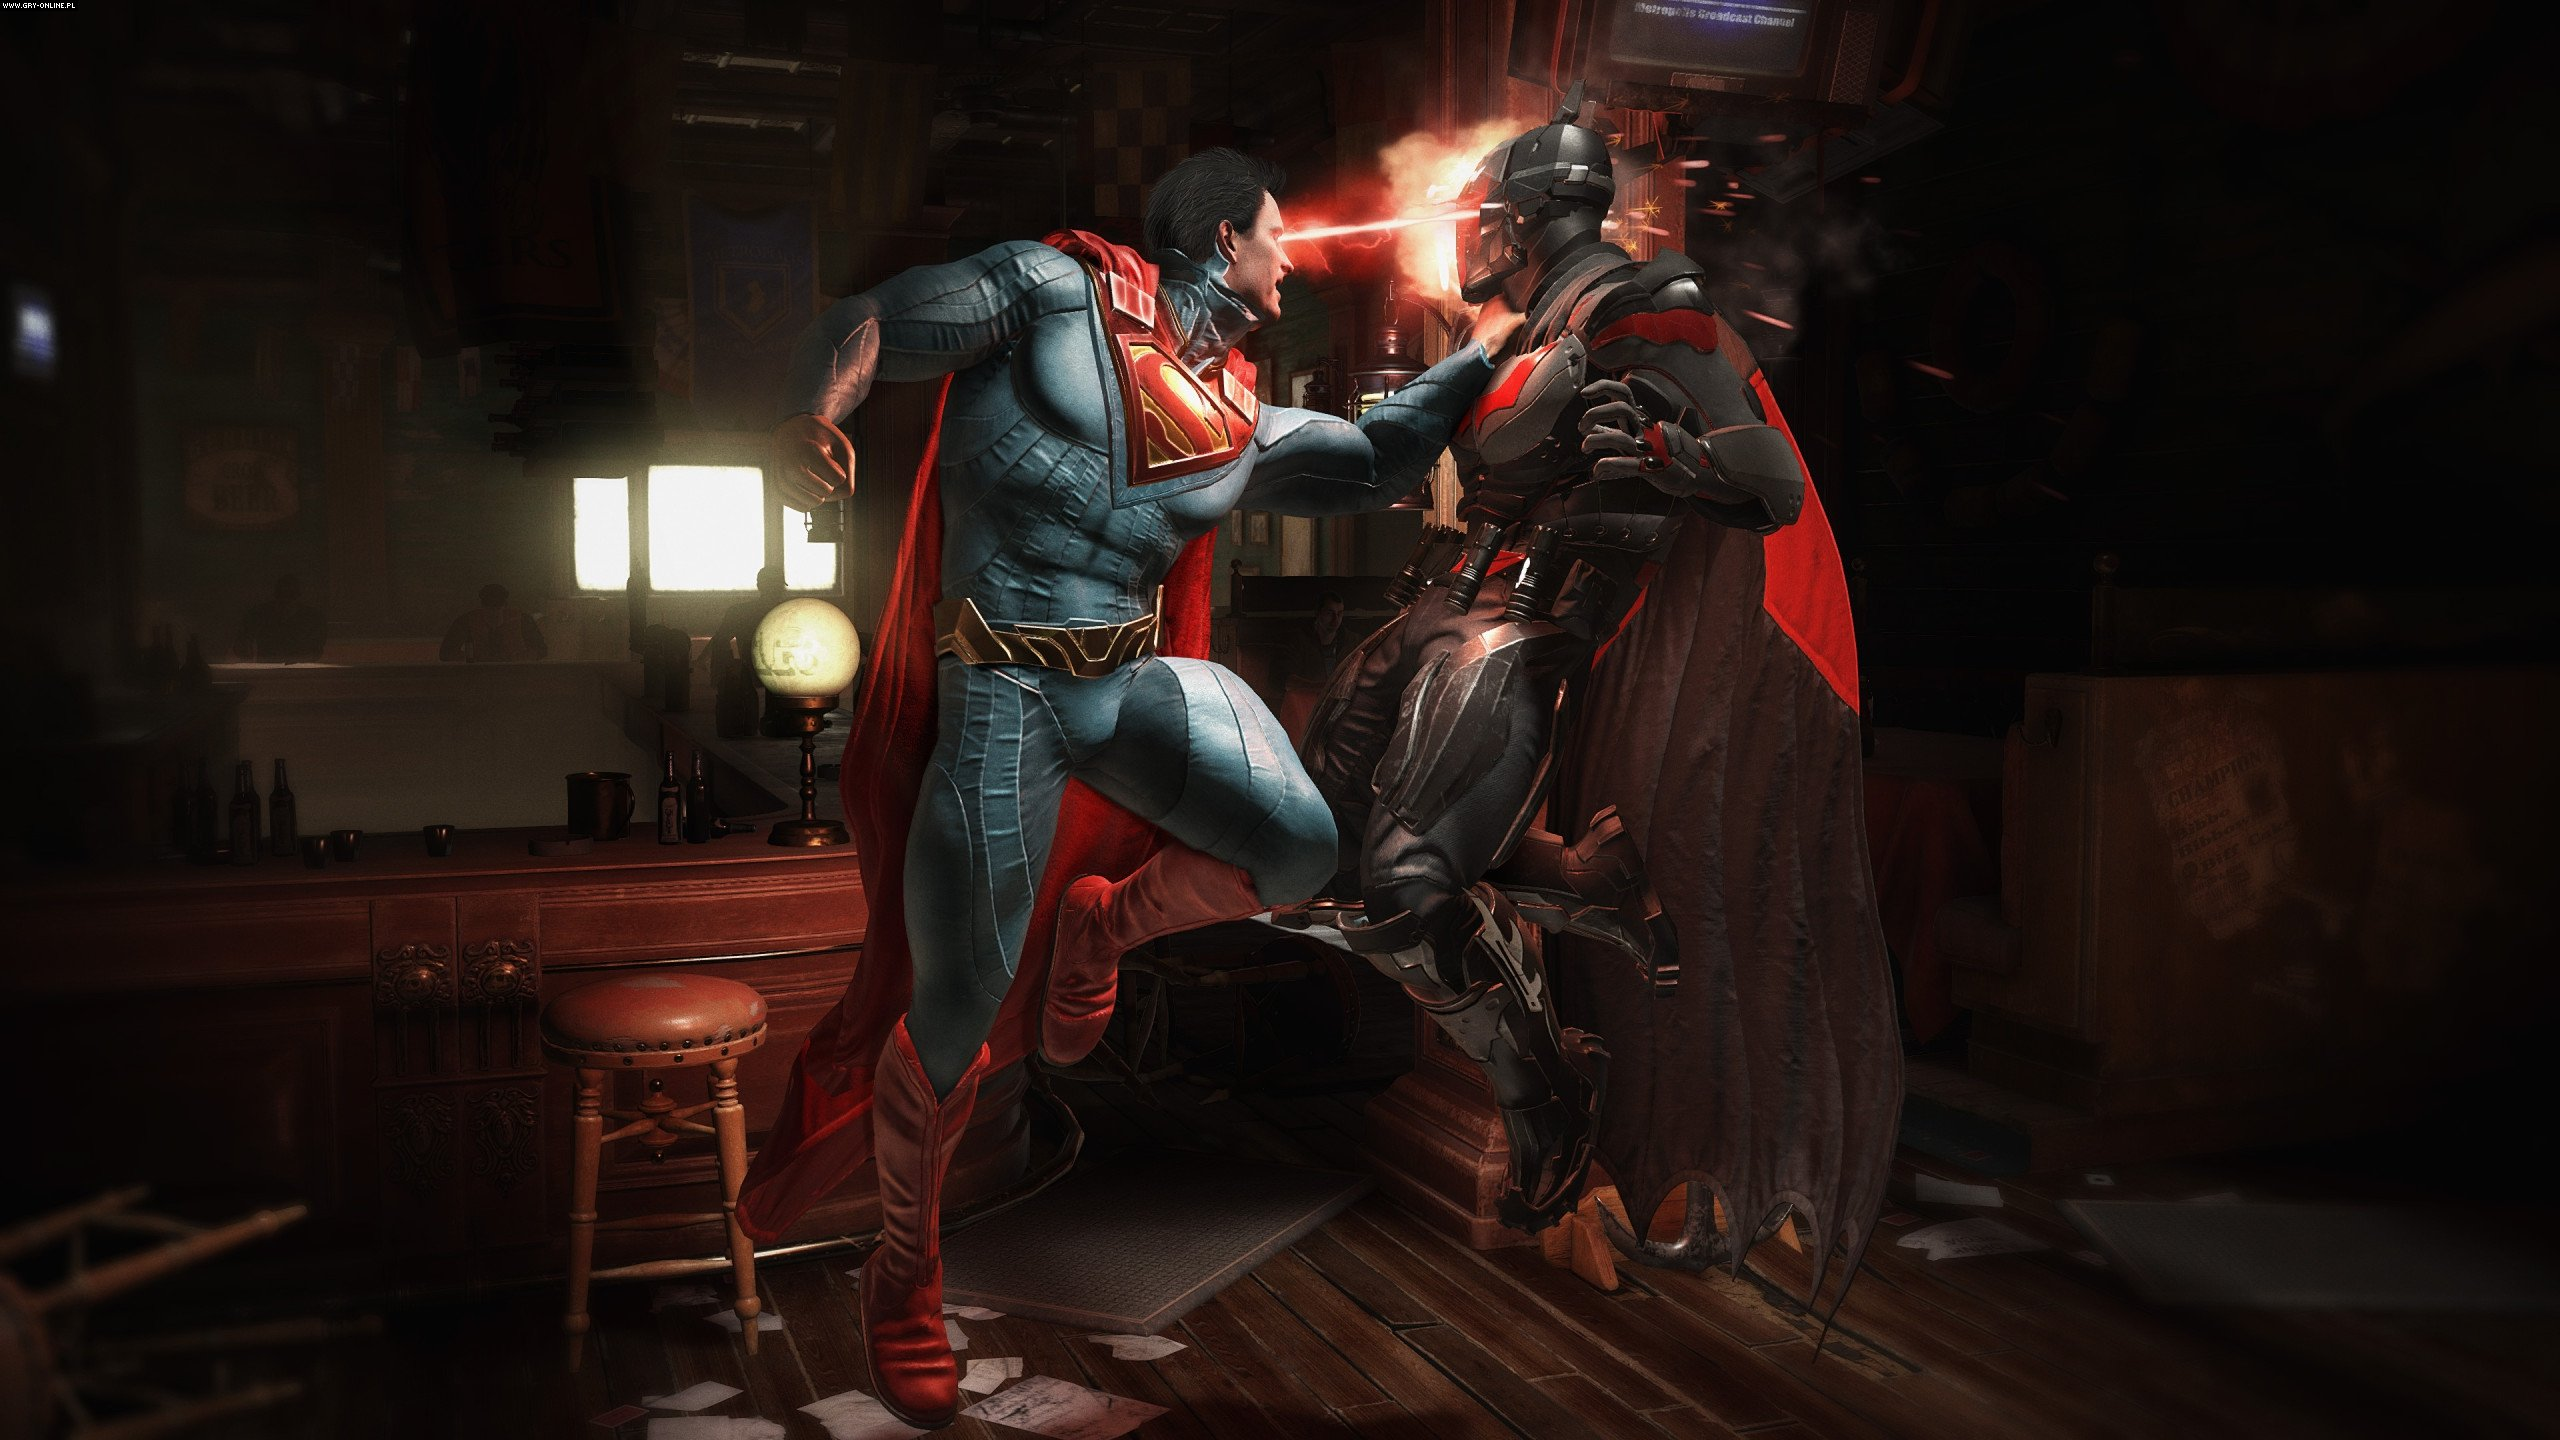 Injustice 2 PC, PS4, XONE Games Image 24/24, NetherRealm Studios , Warner Bros. Interactive Entertainment